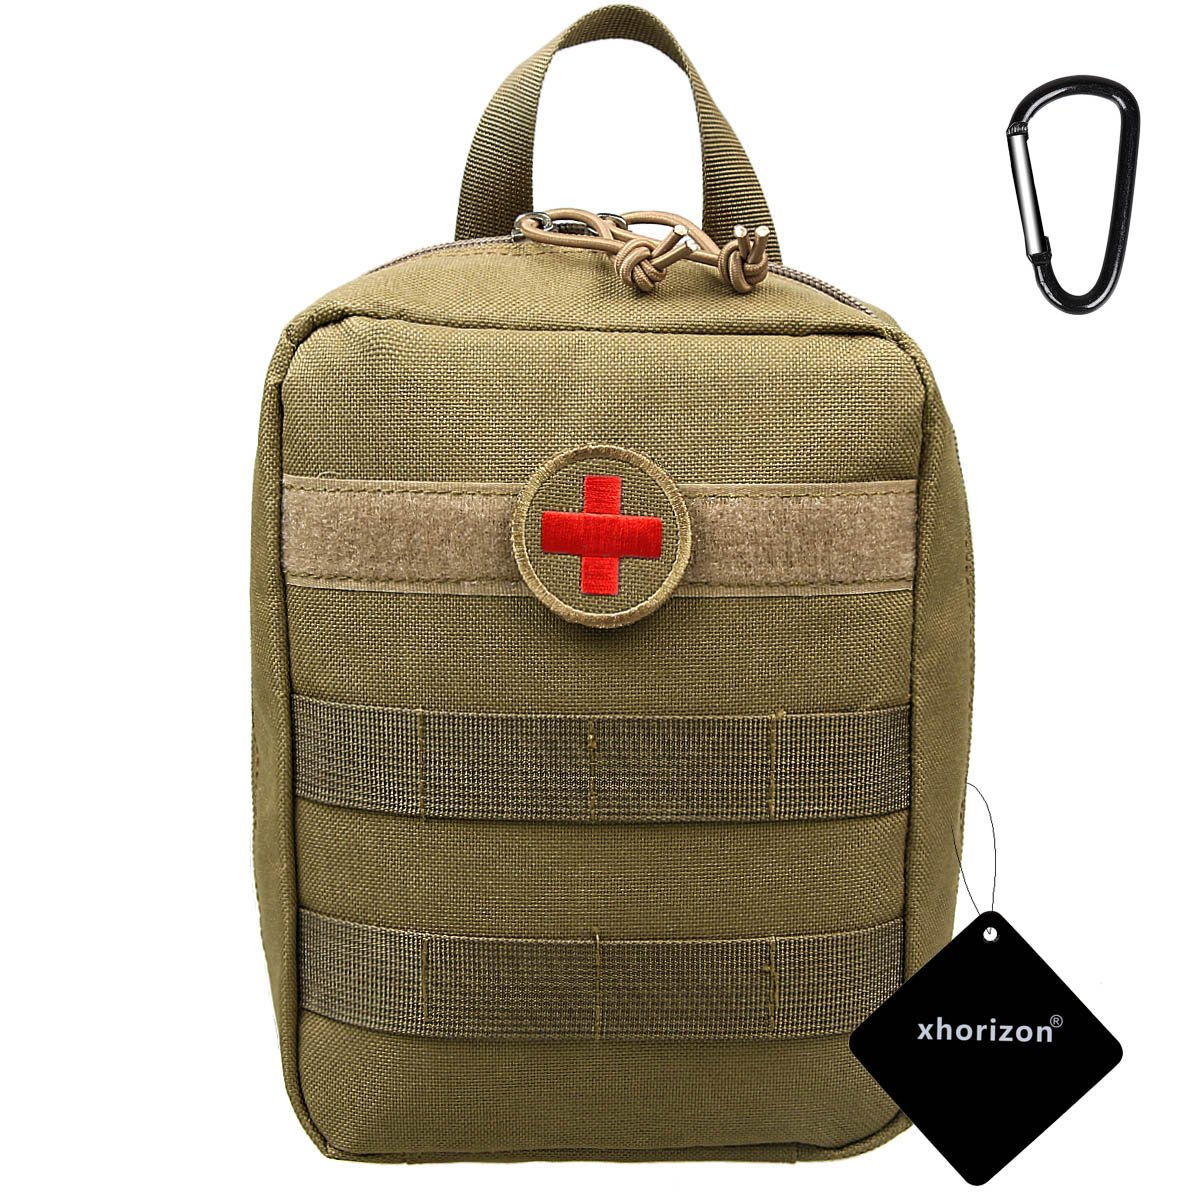 xhorizon TM SR Molle Medical EMT First Aid Pouch Bag Waterproof Nylon Tactical First Aid Bag Military Utility Pouches